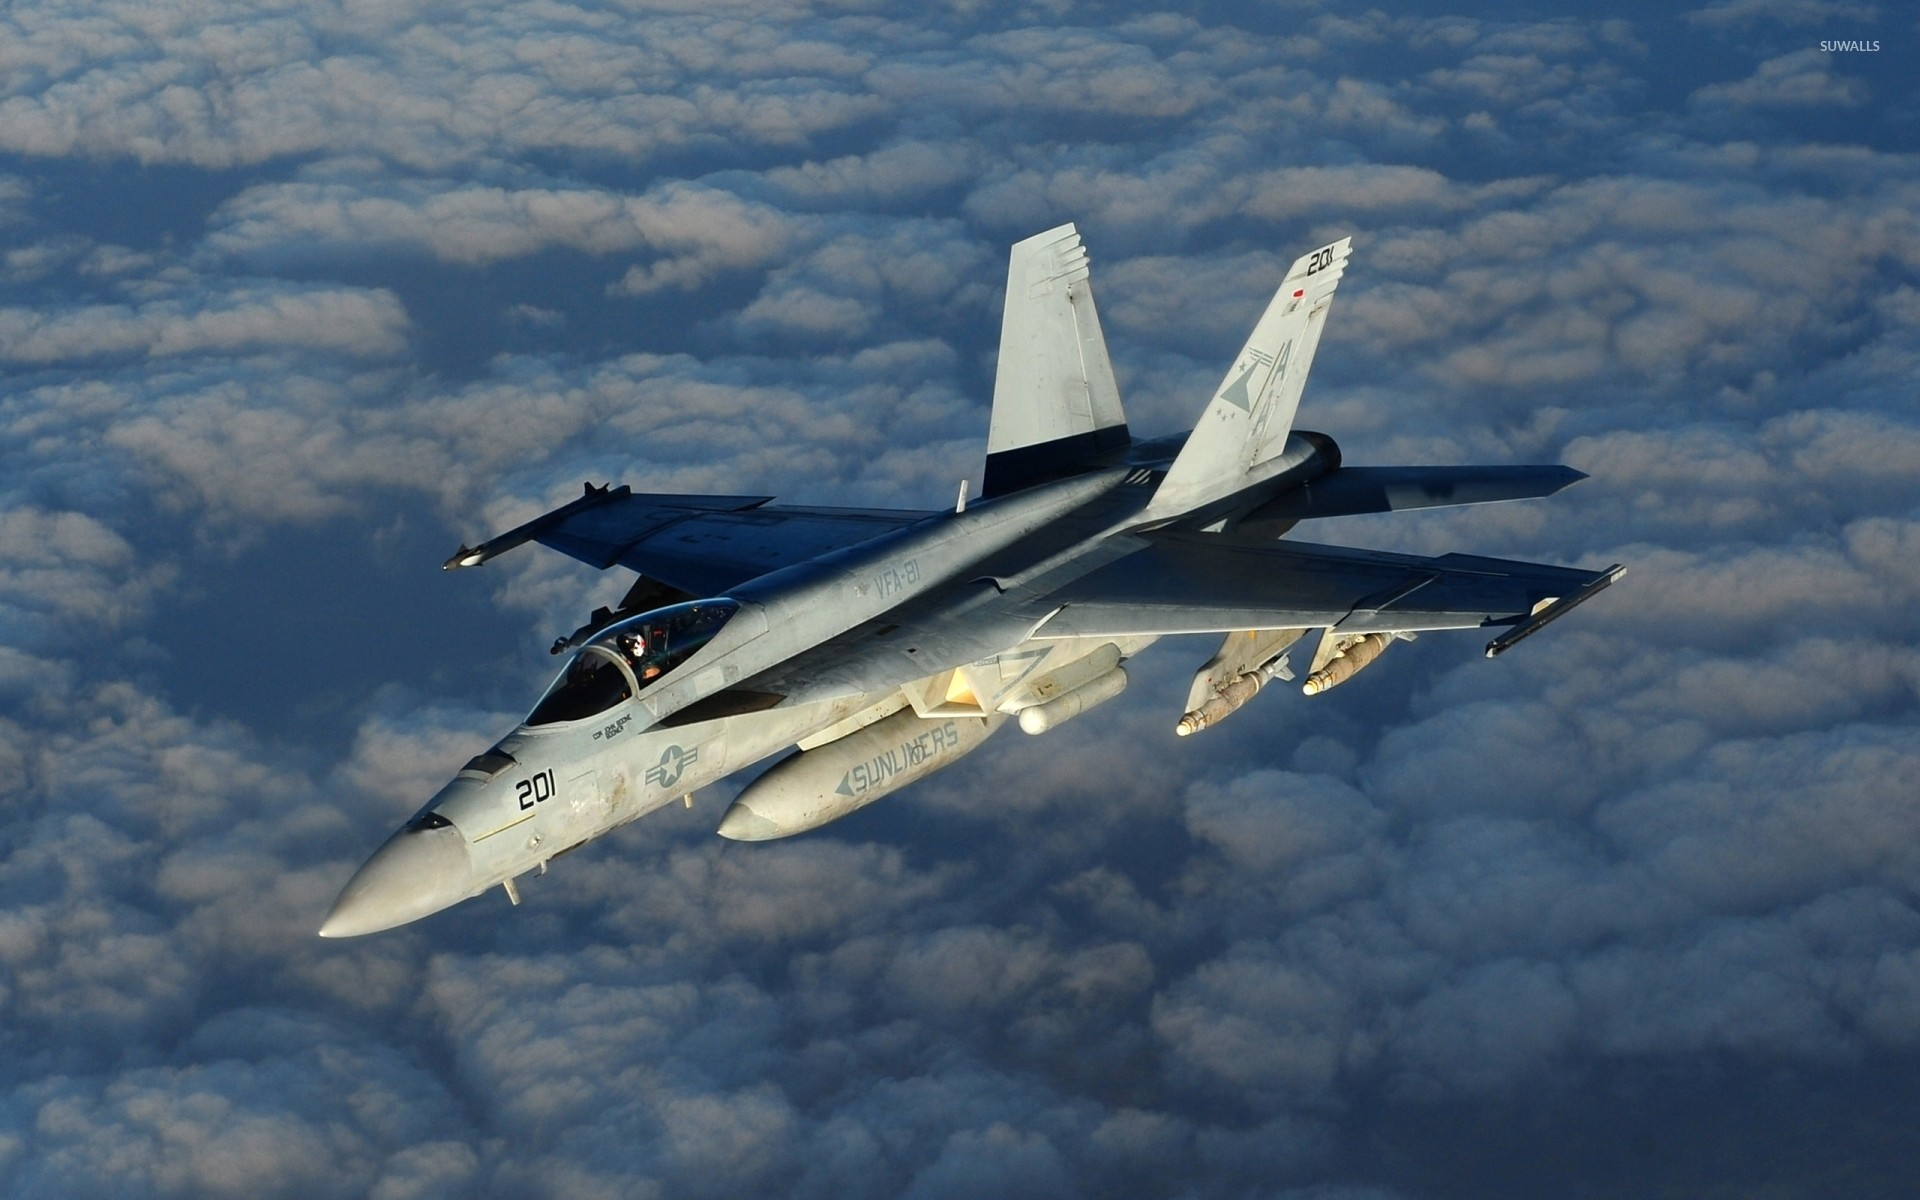 1920x1200 Boeing F/A-18E Super Hornet above the clouds wallpaper